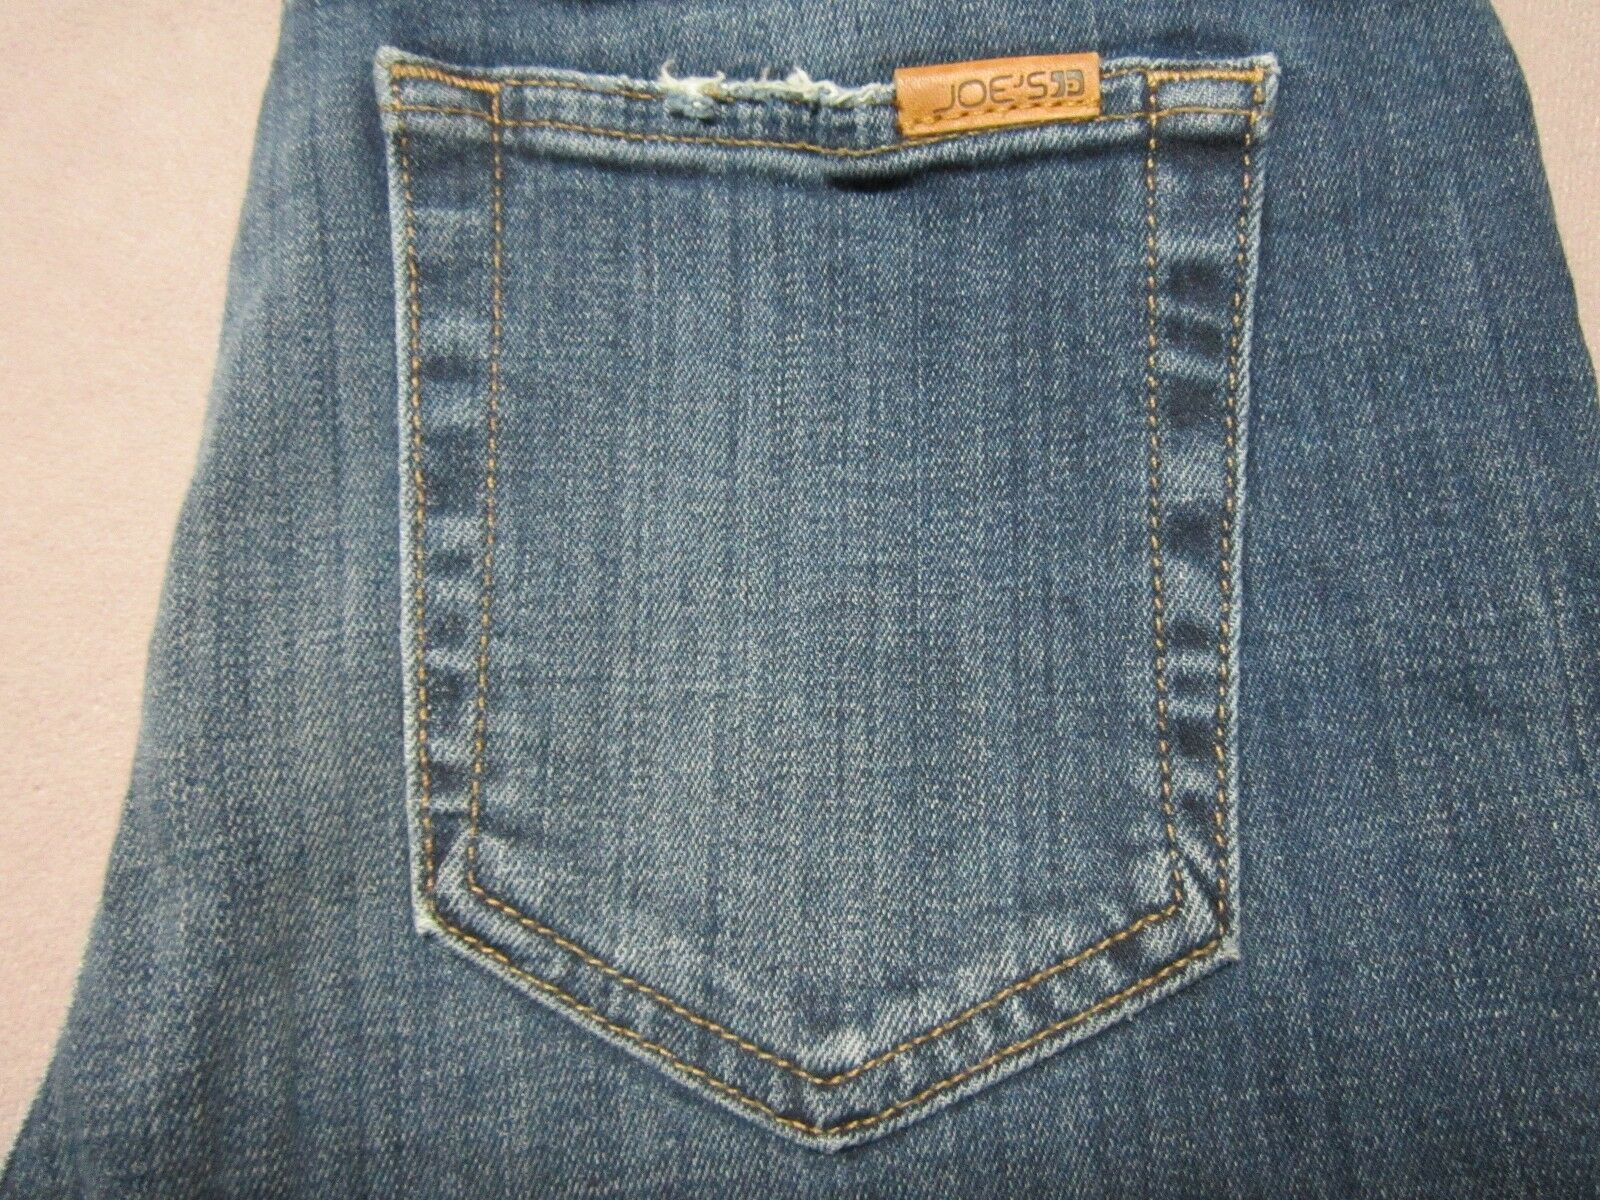 JOES JEANS WOMENS HIGH RISE SKINNY DESTROYED DISTRESSED blueE JEANS SIZE 27 NEW